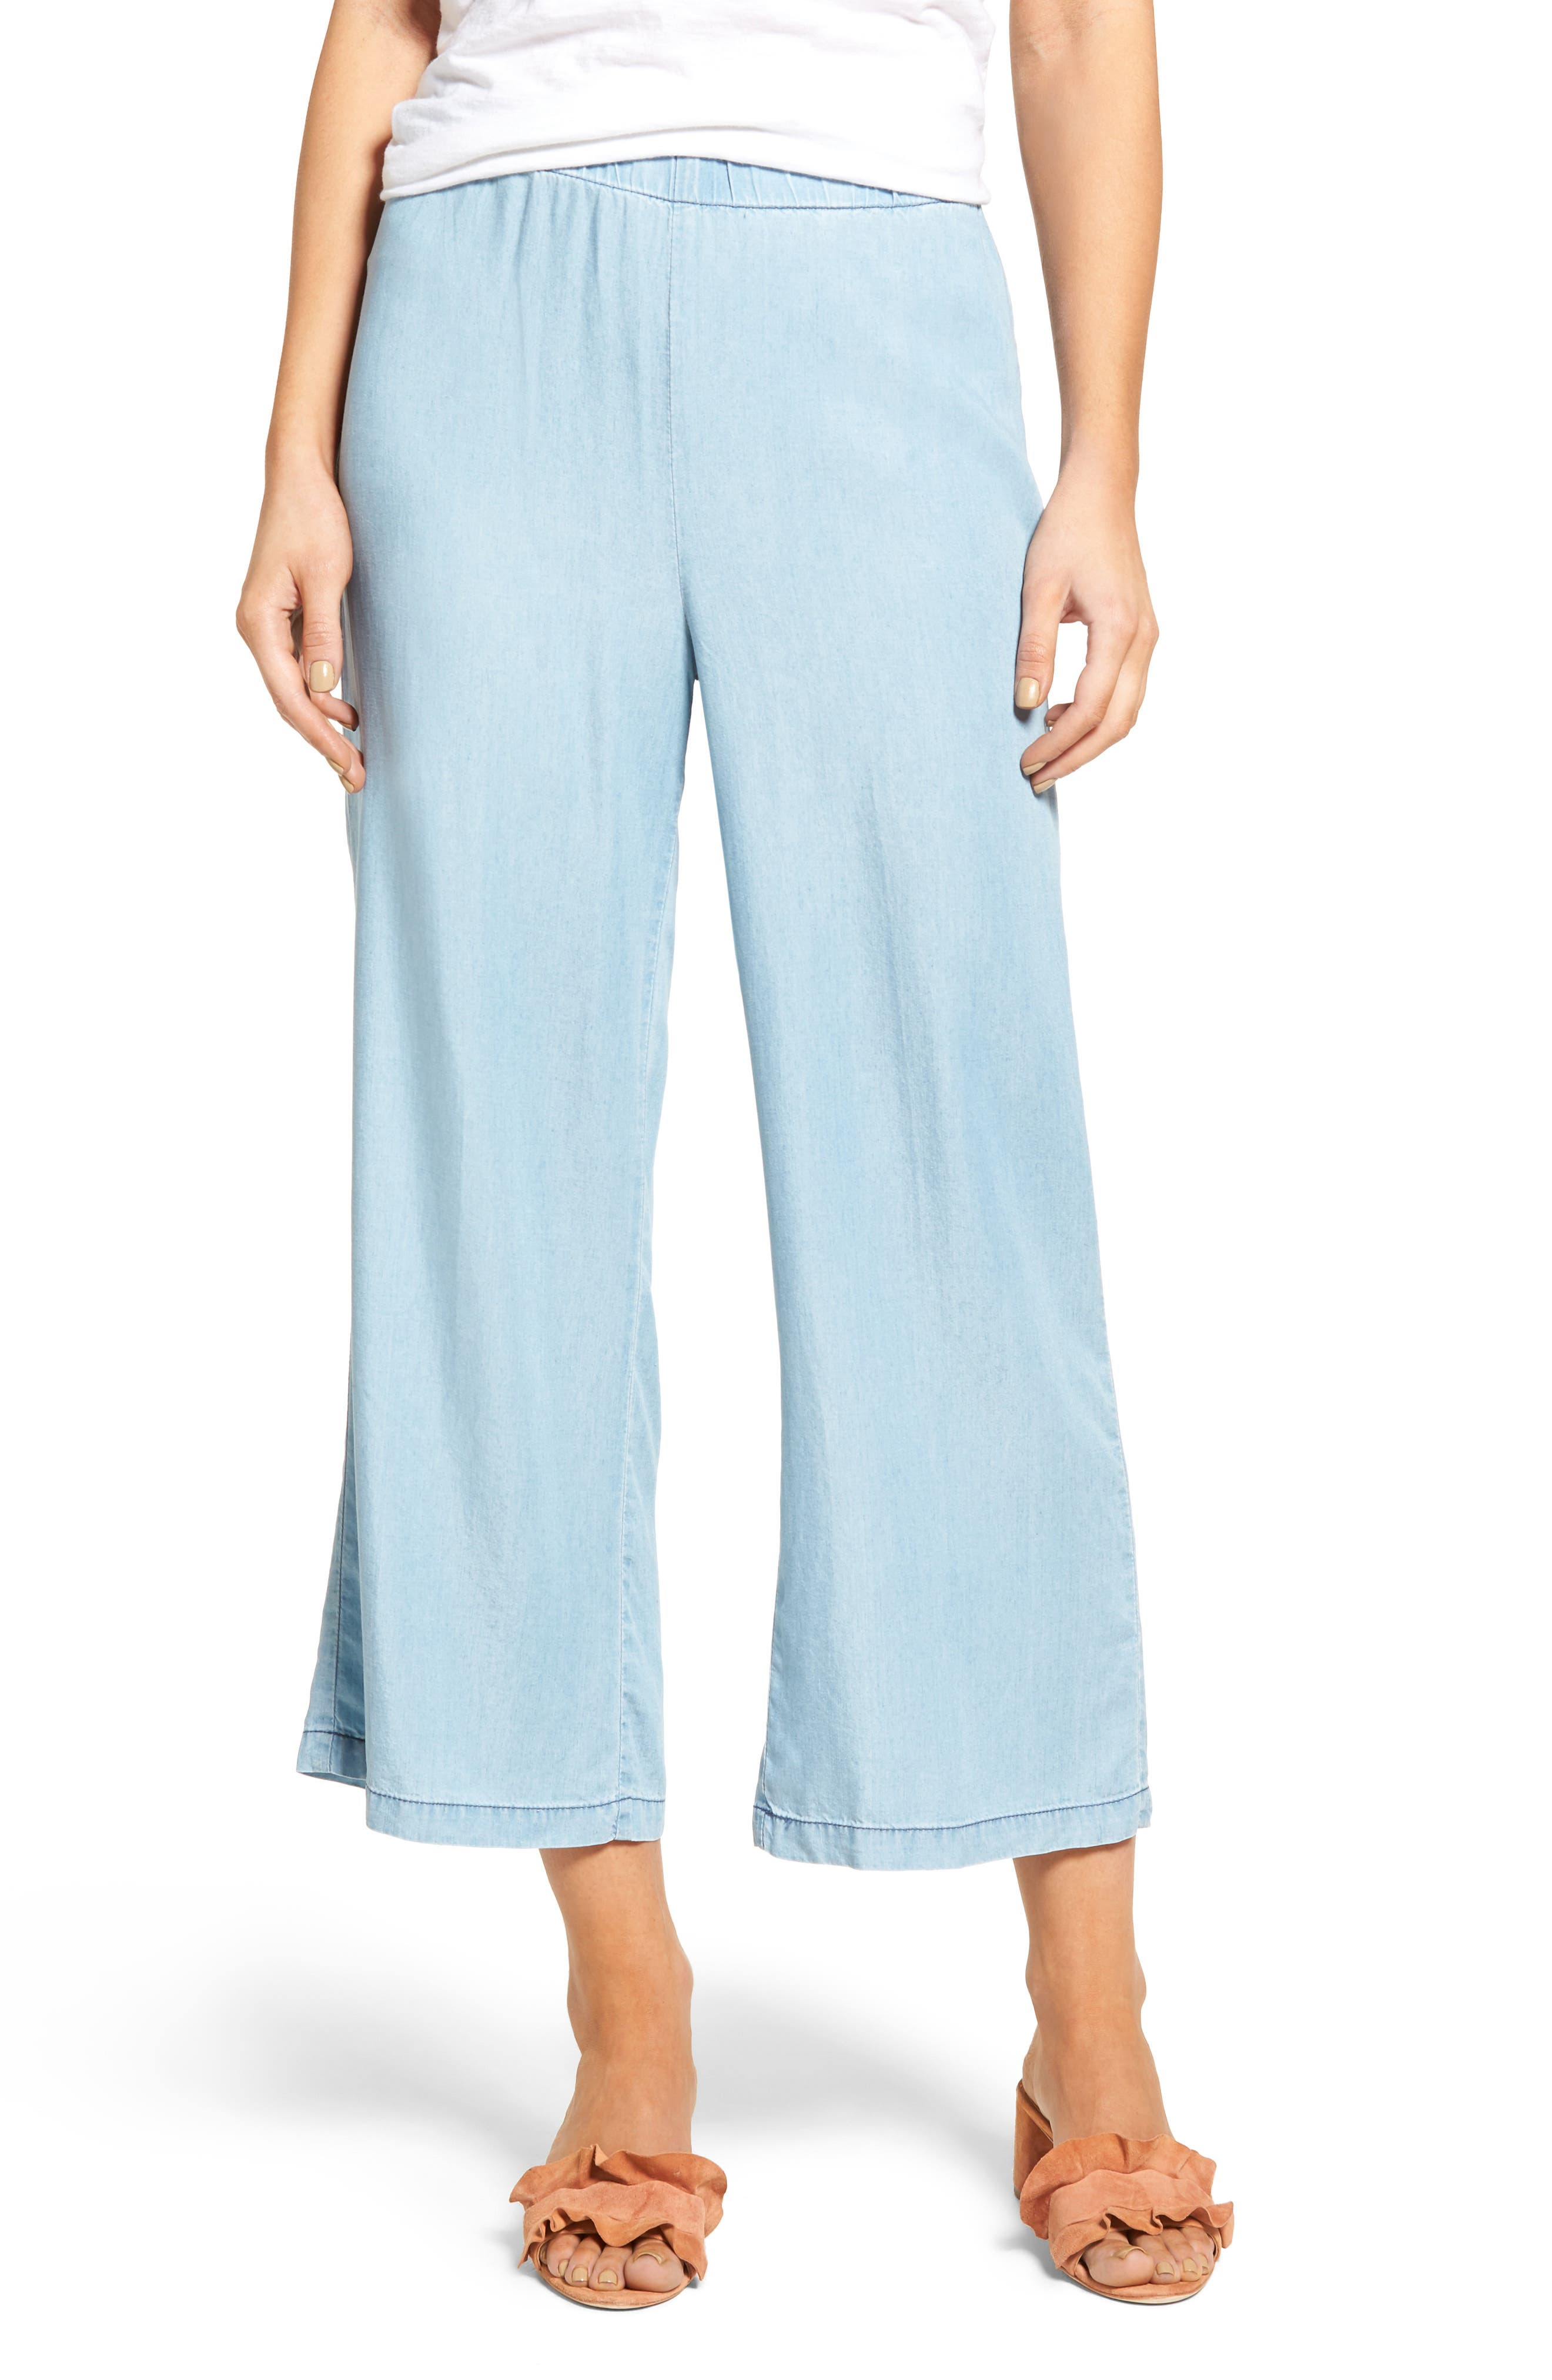 cupcakes and cashmere Dancer Crop Flare Chambray Pants